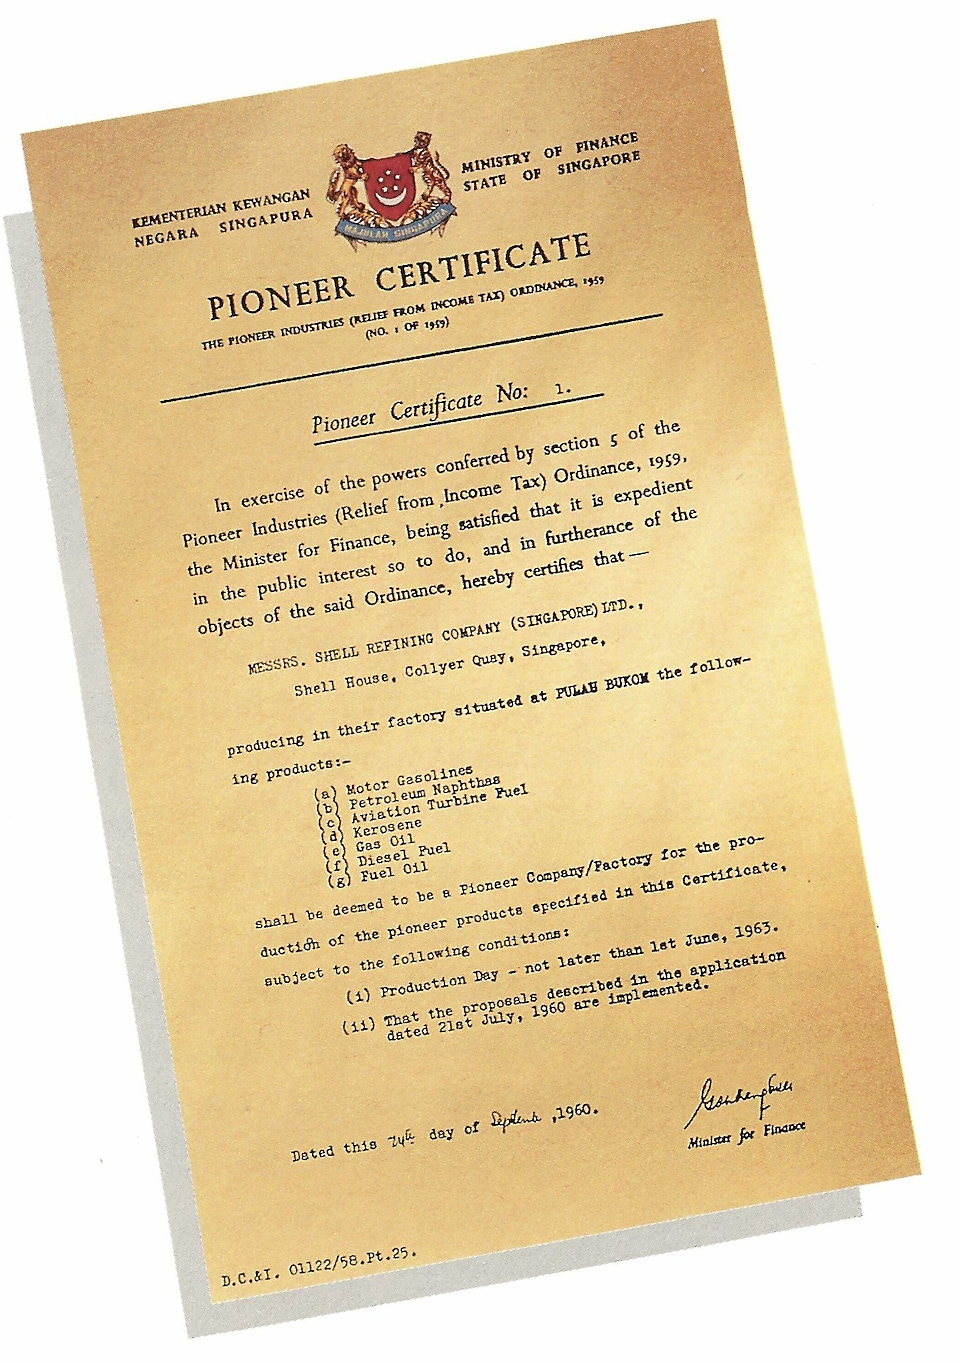 1960 Shell awarded Pioneer Certificate No.1